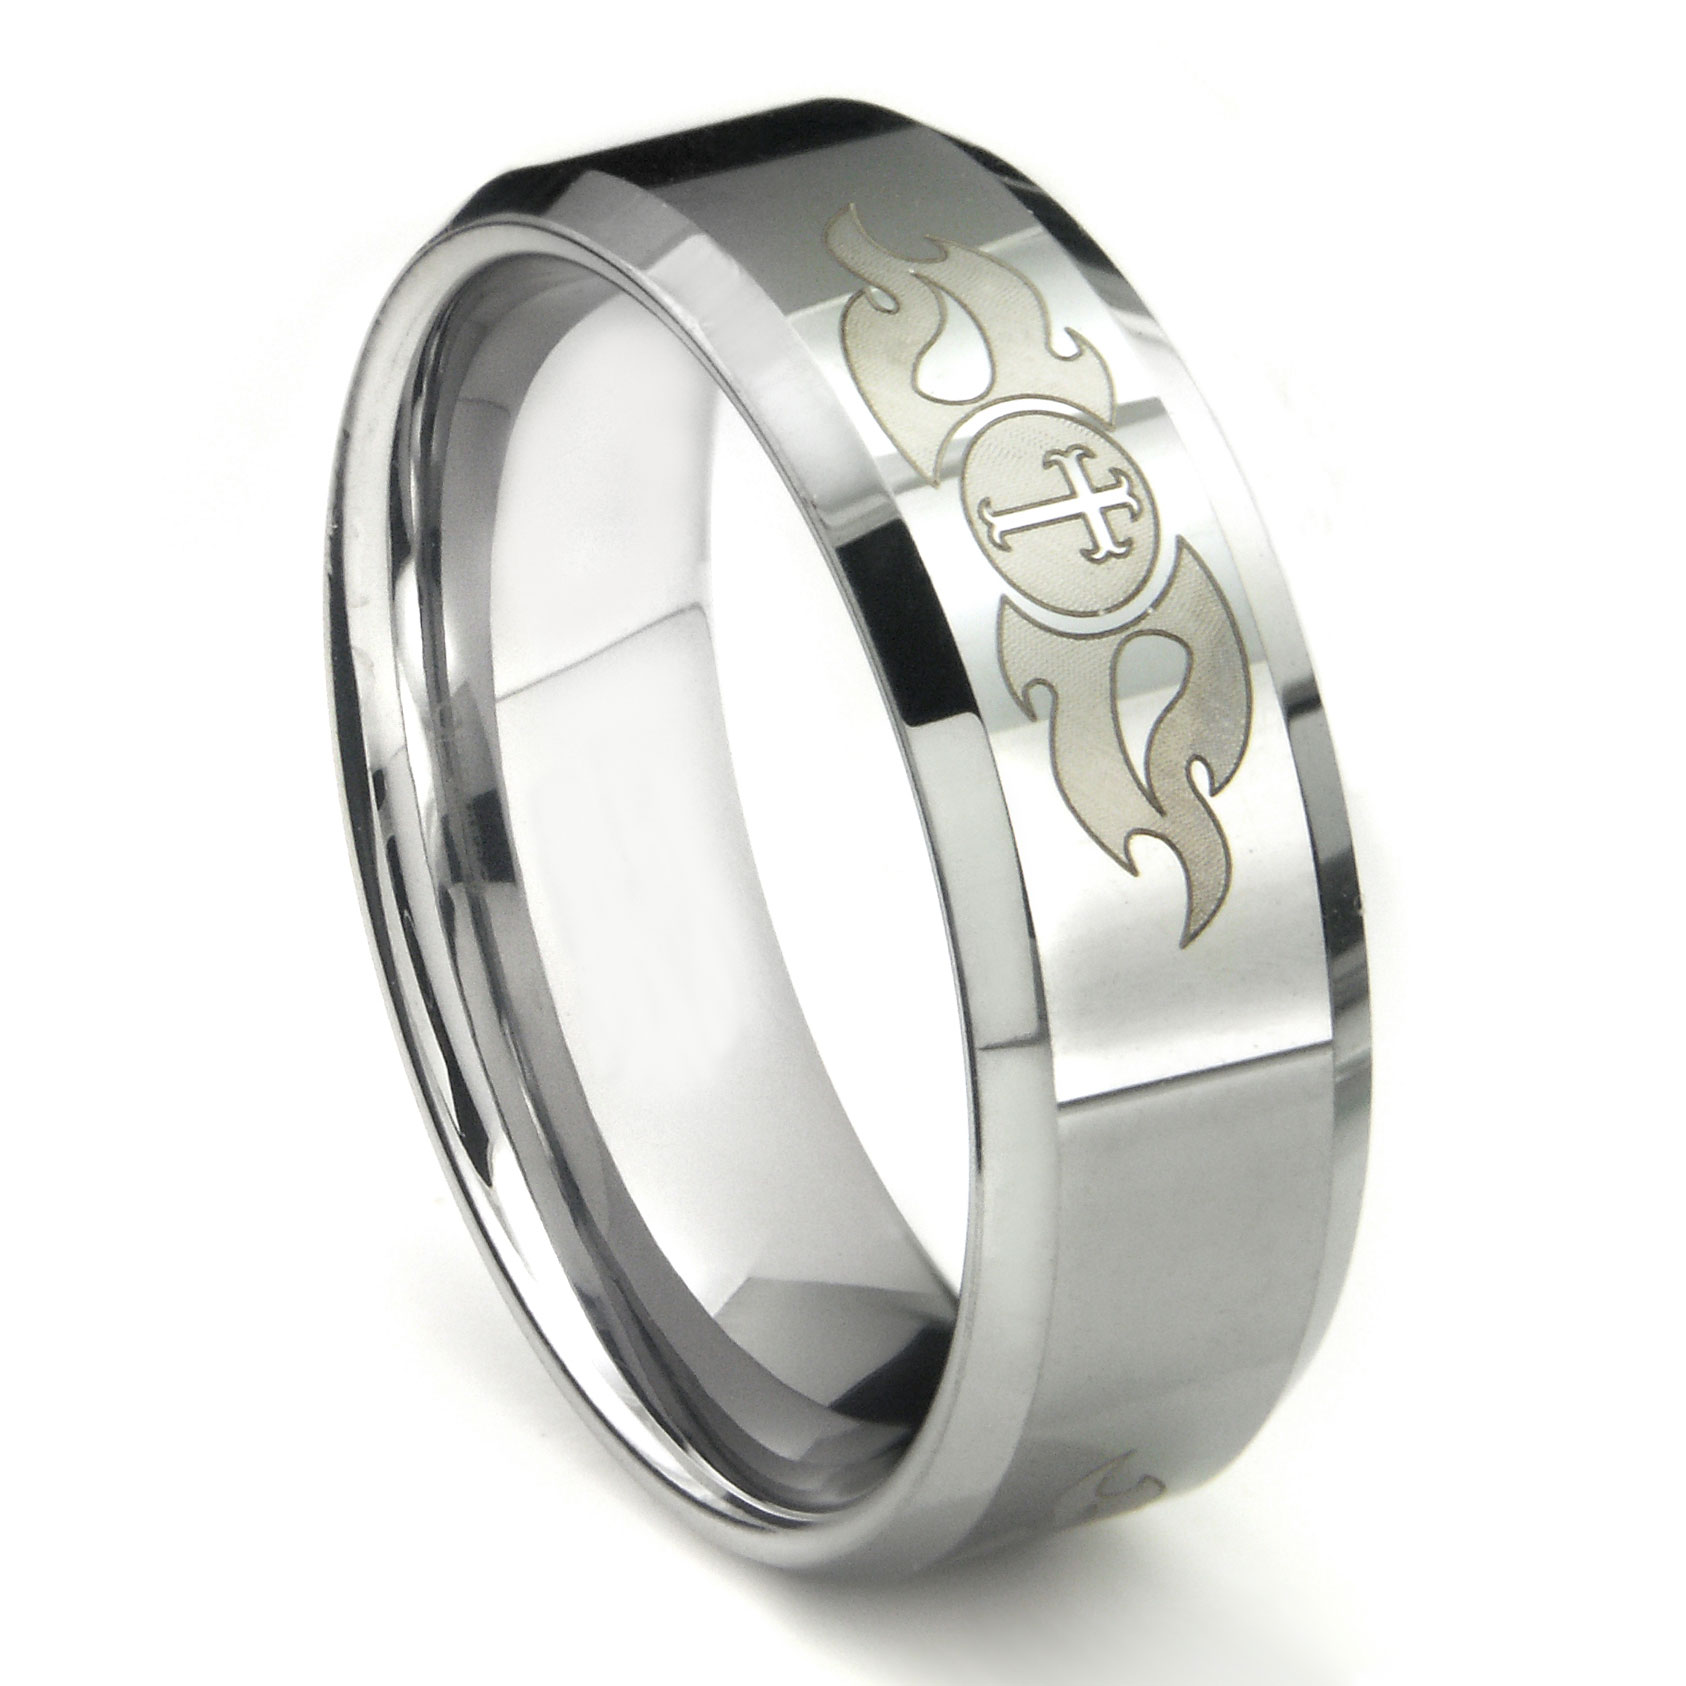 style rings best celtic inspirations in pinterest engagement on of ideas wedding